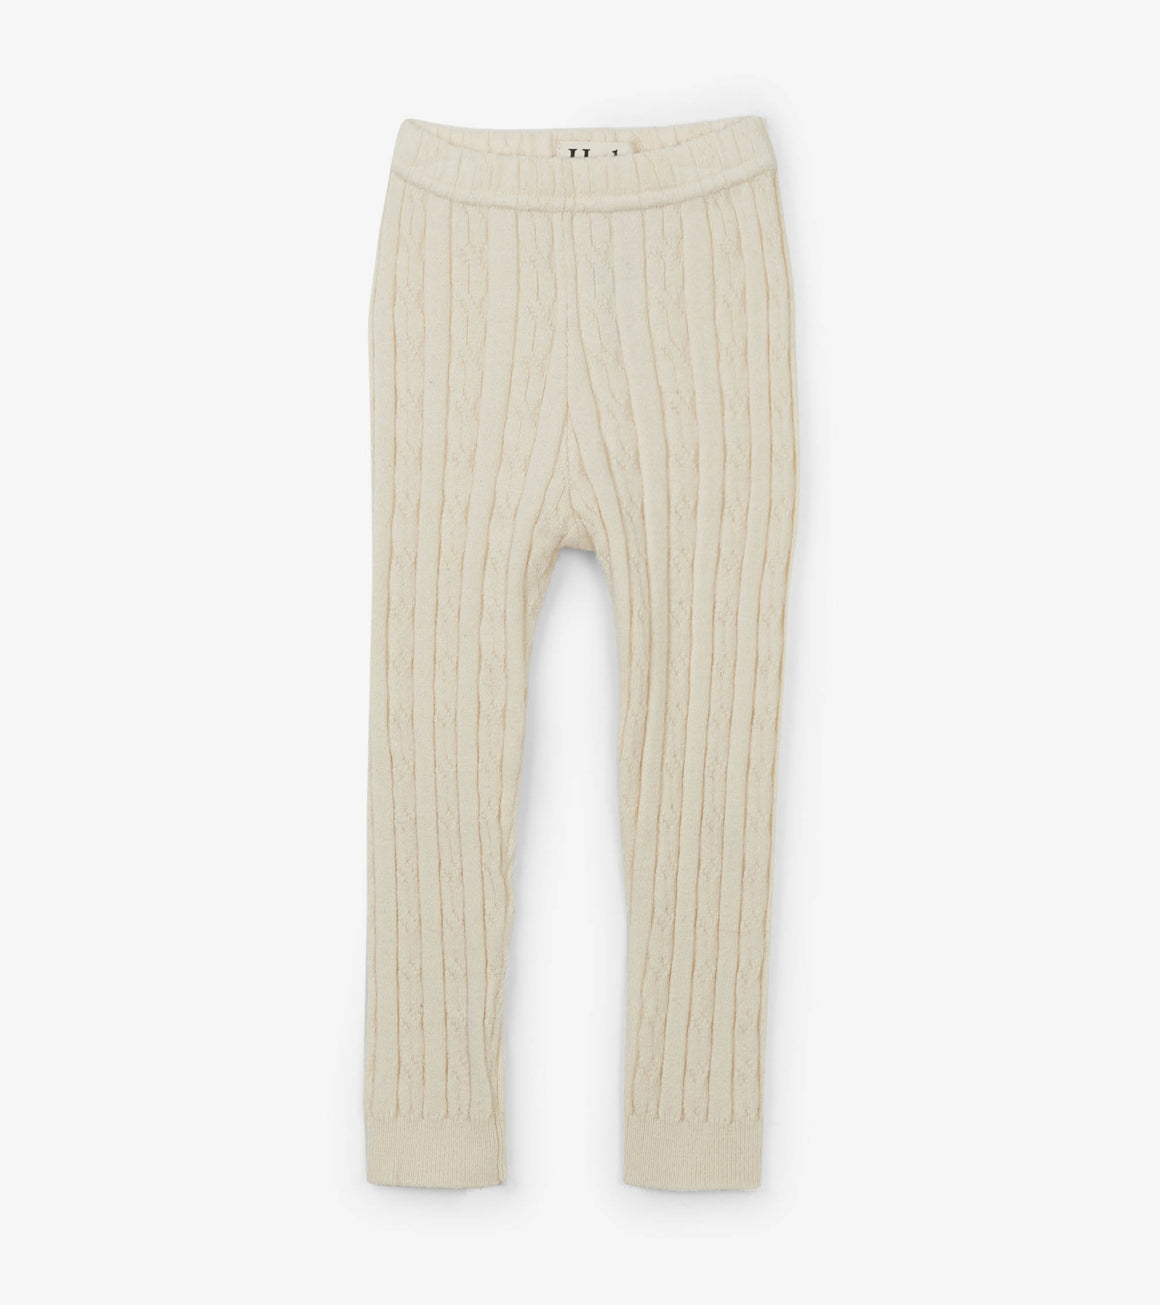 Hatley | Cream Cable Knit Baby Footless Tights